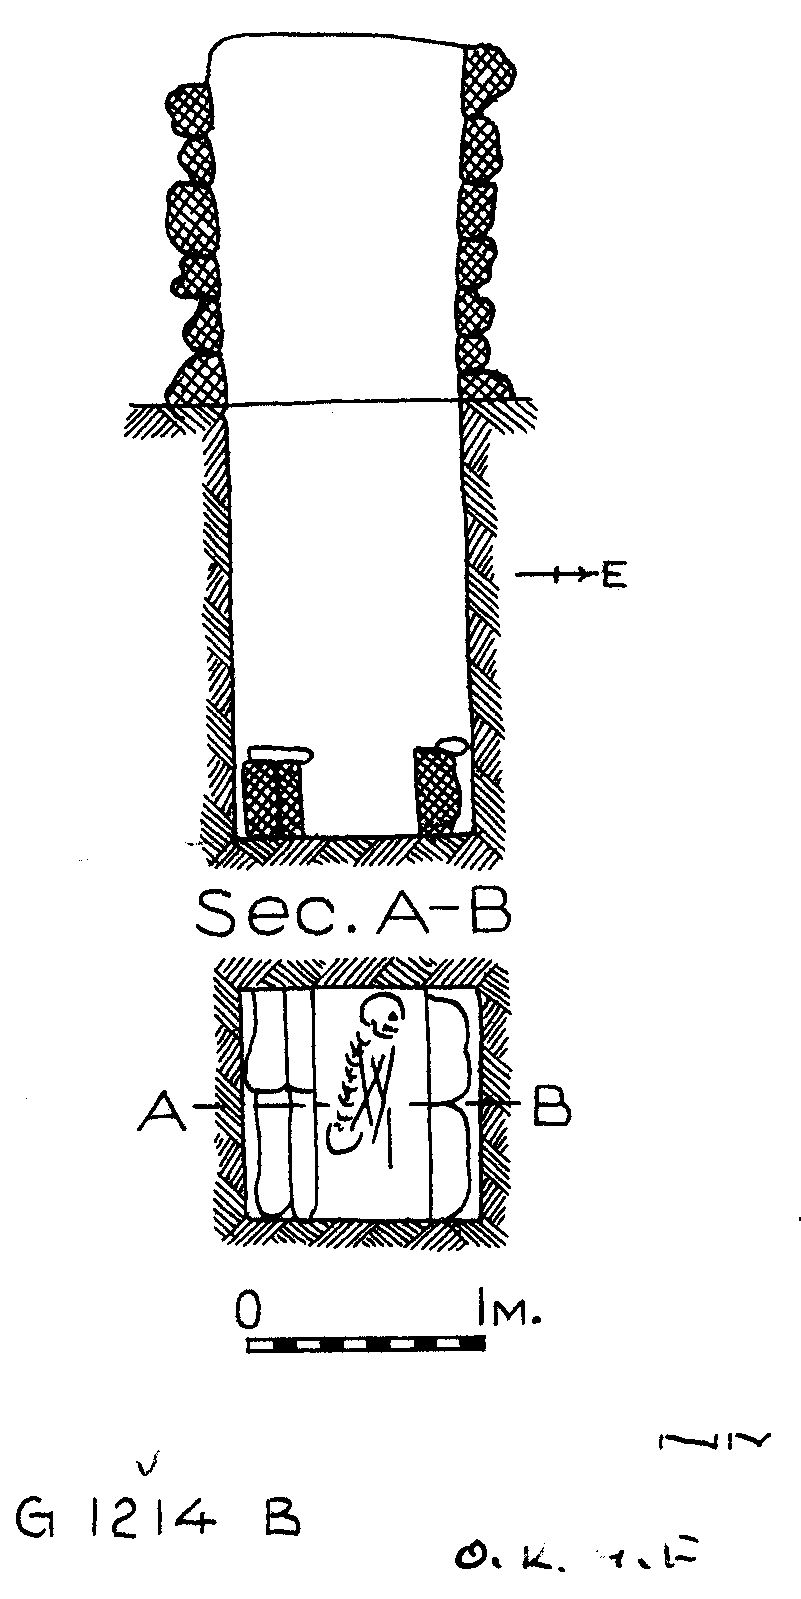 Maps and plans: G 1214, Shaft B